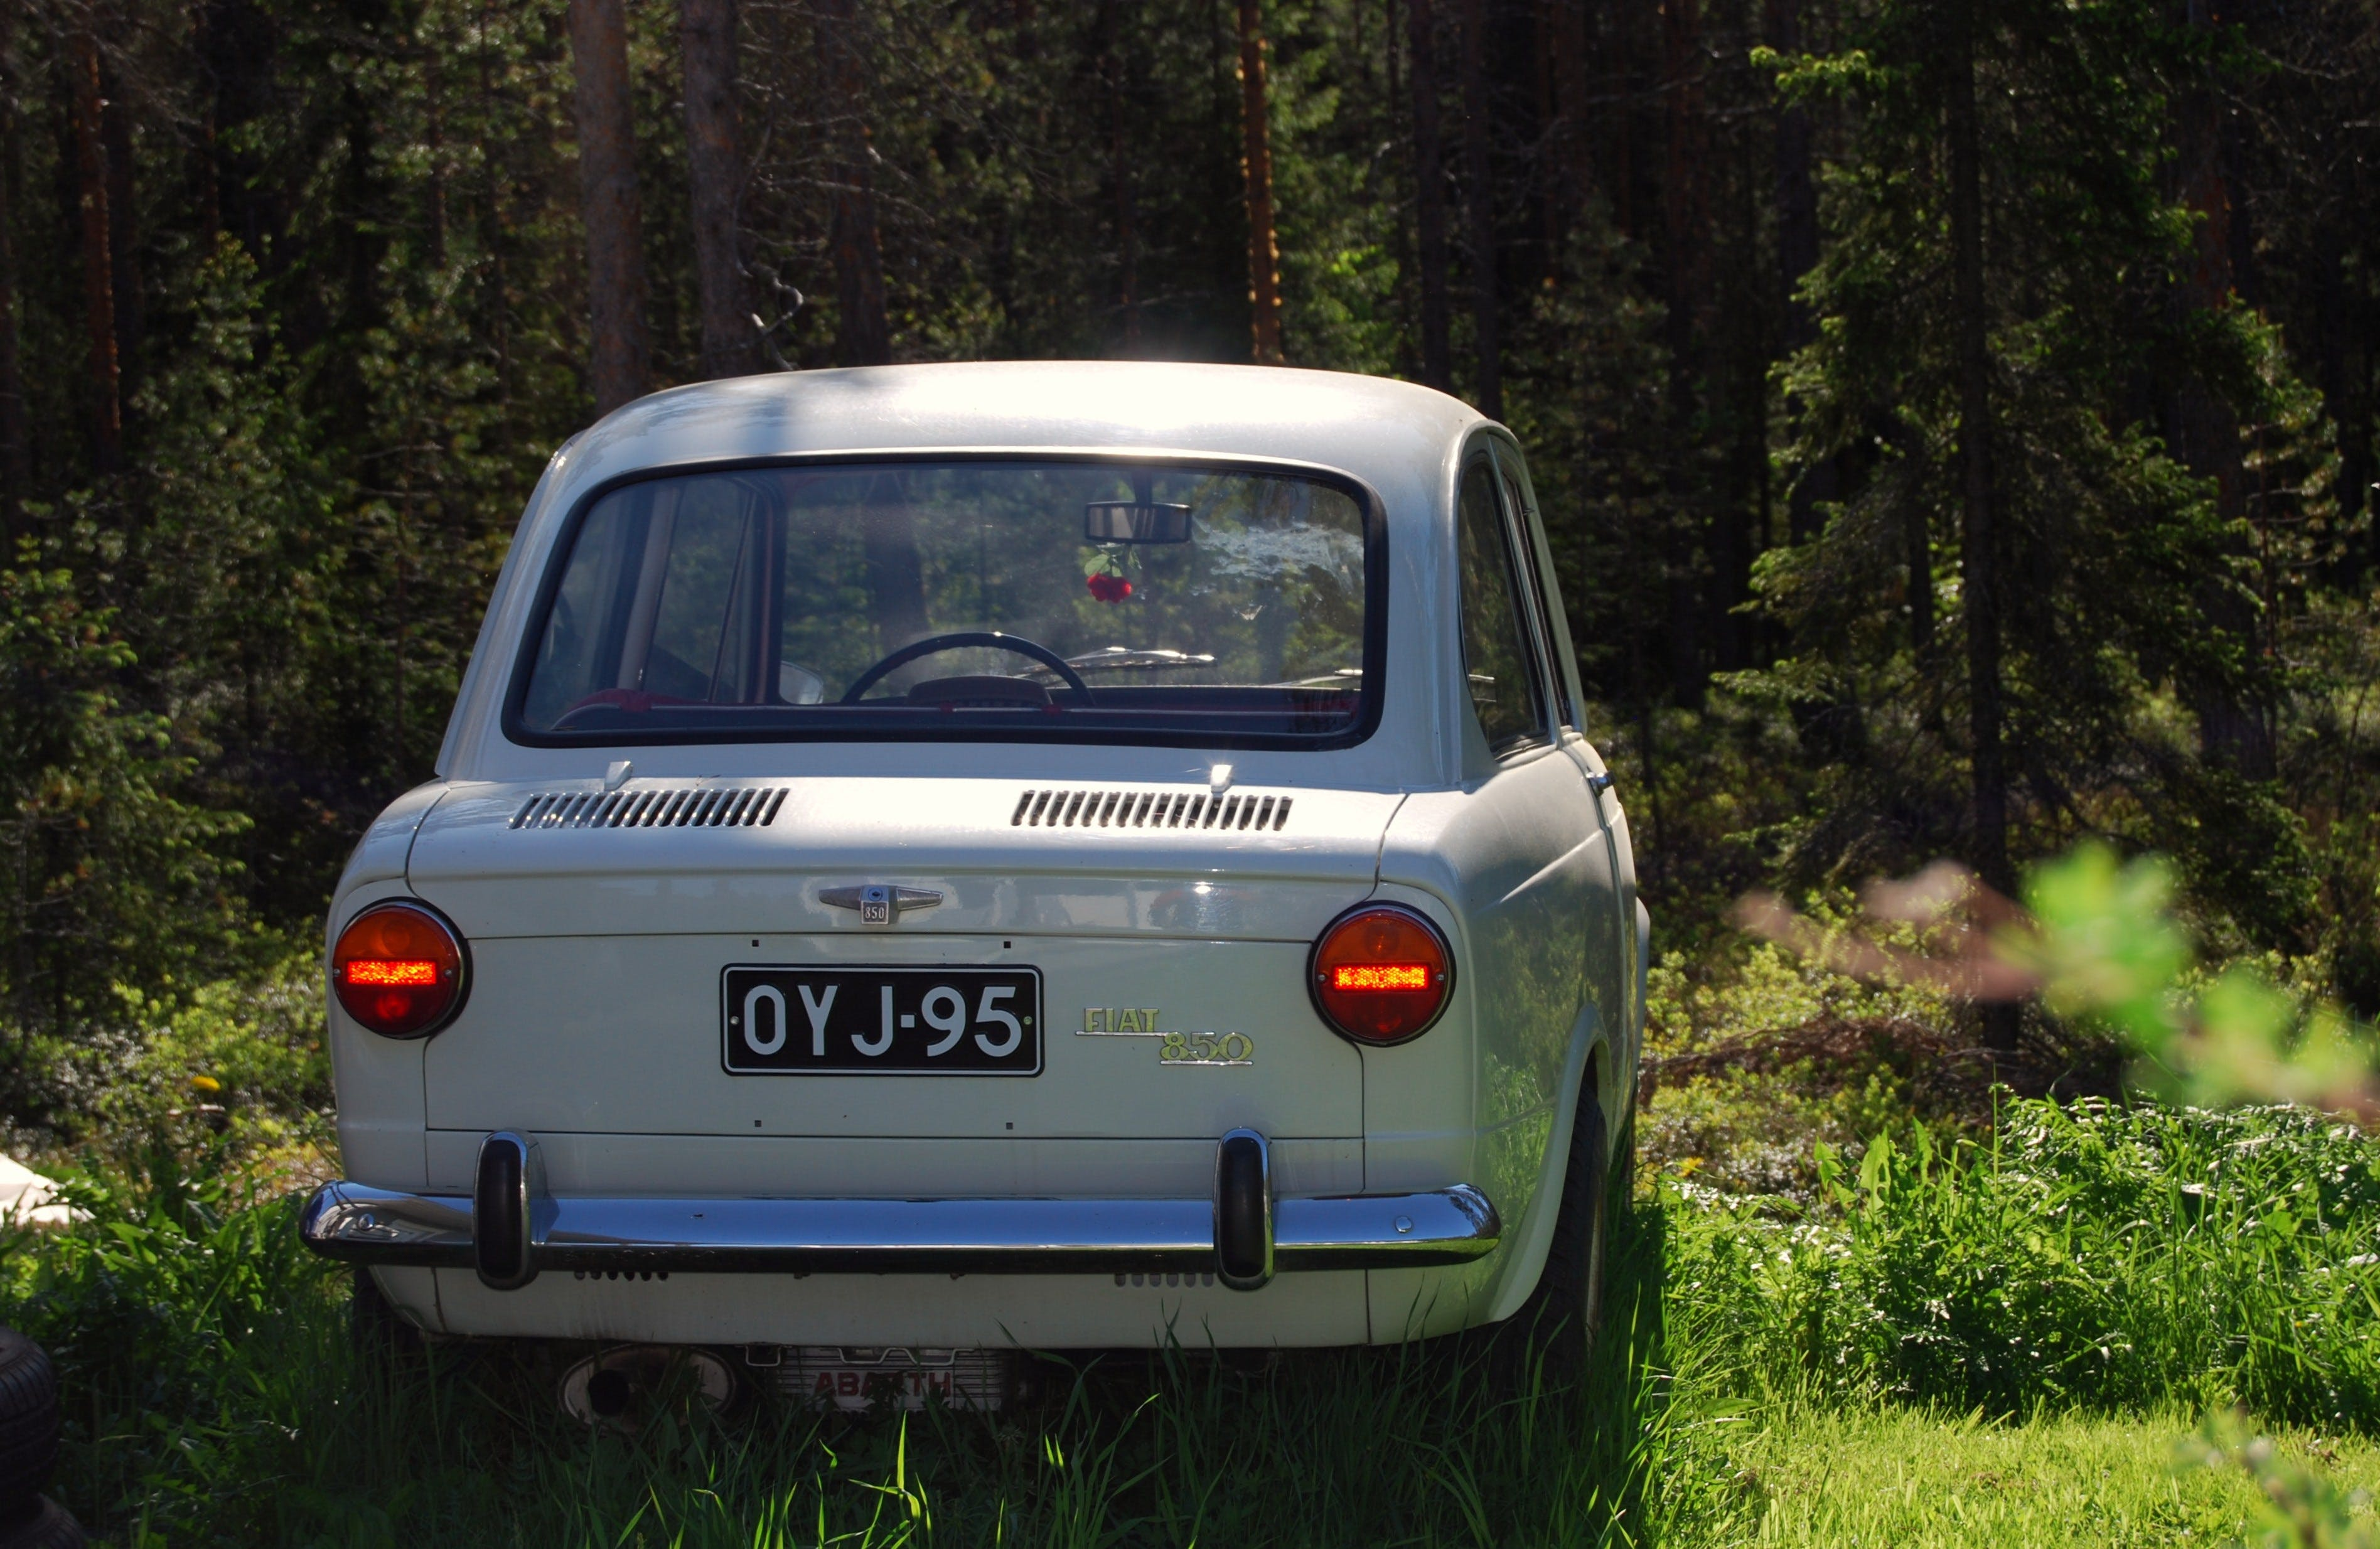 Gray Car Parked in the Forest